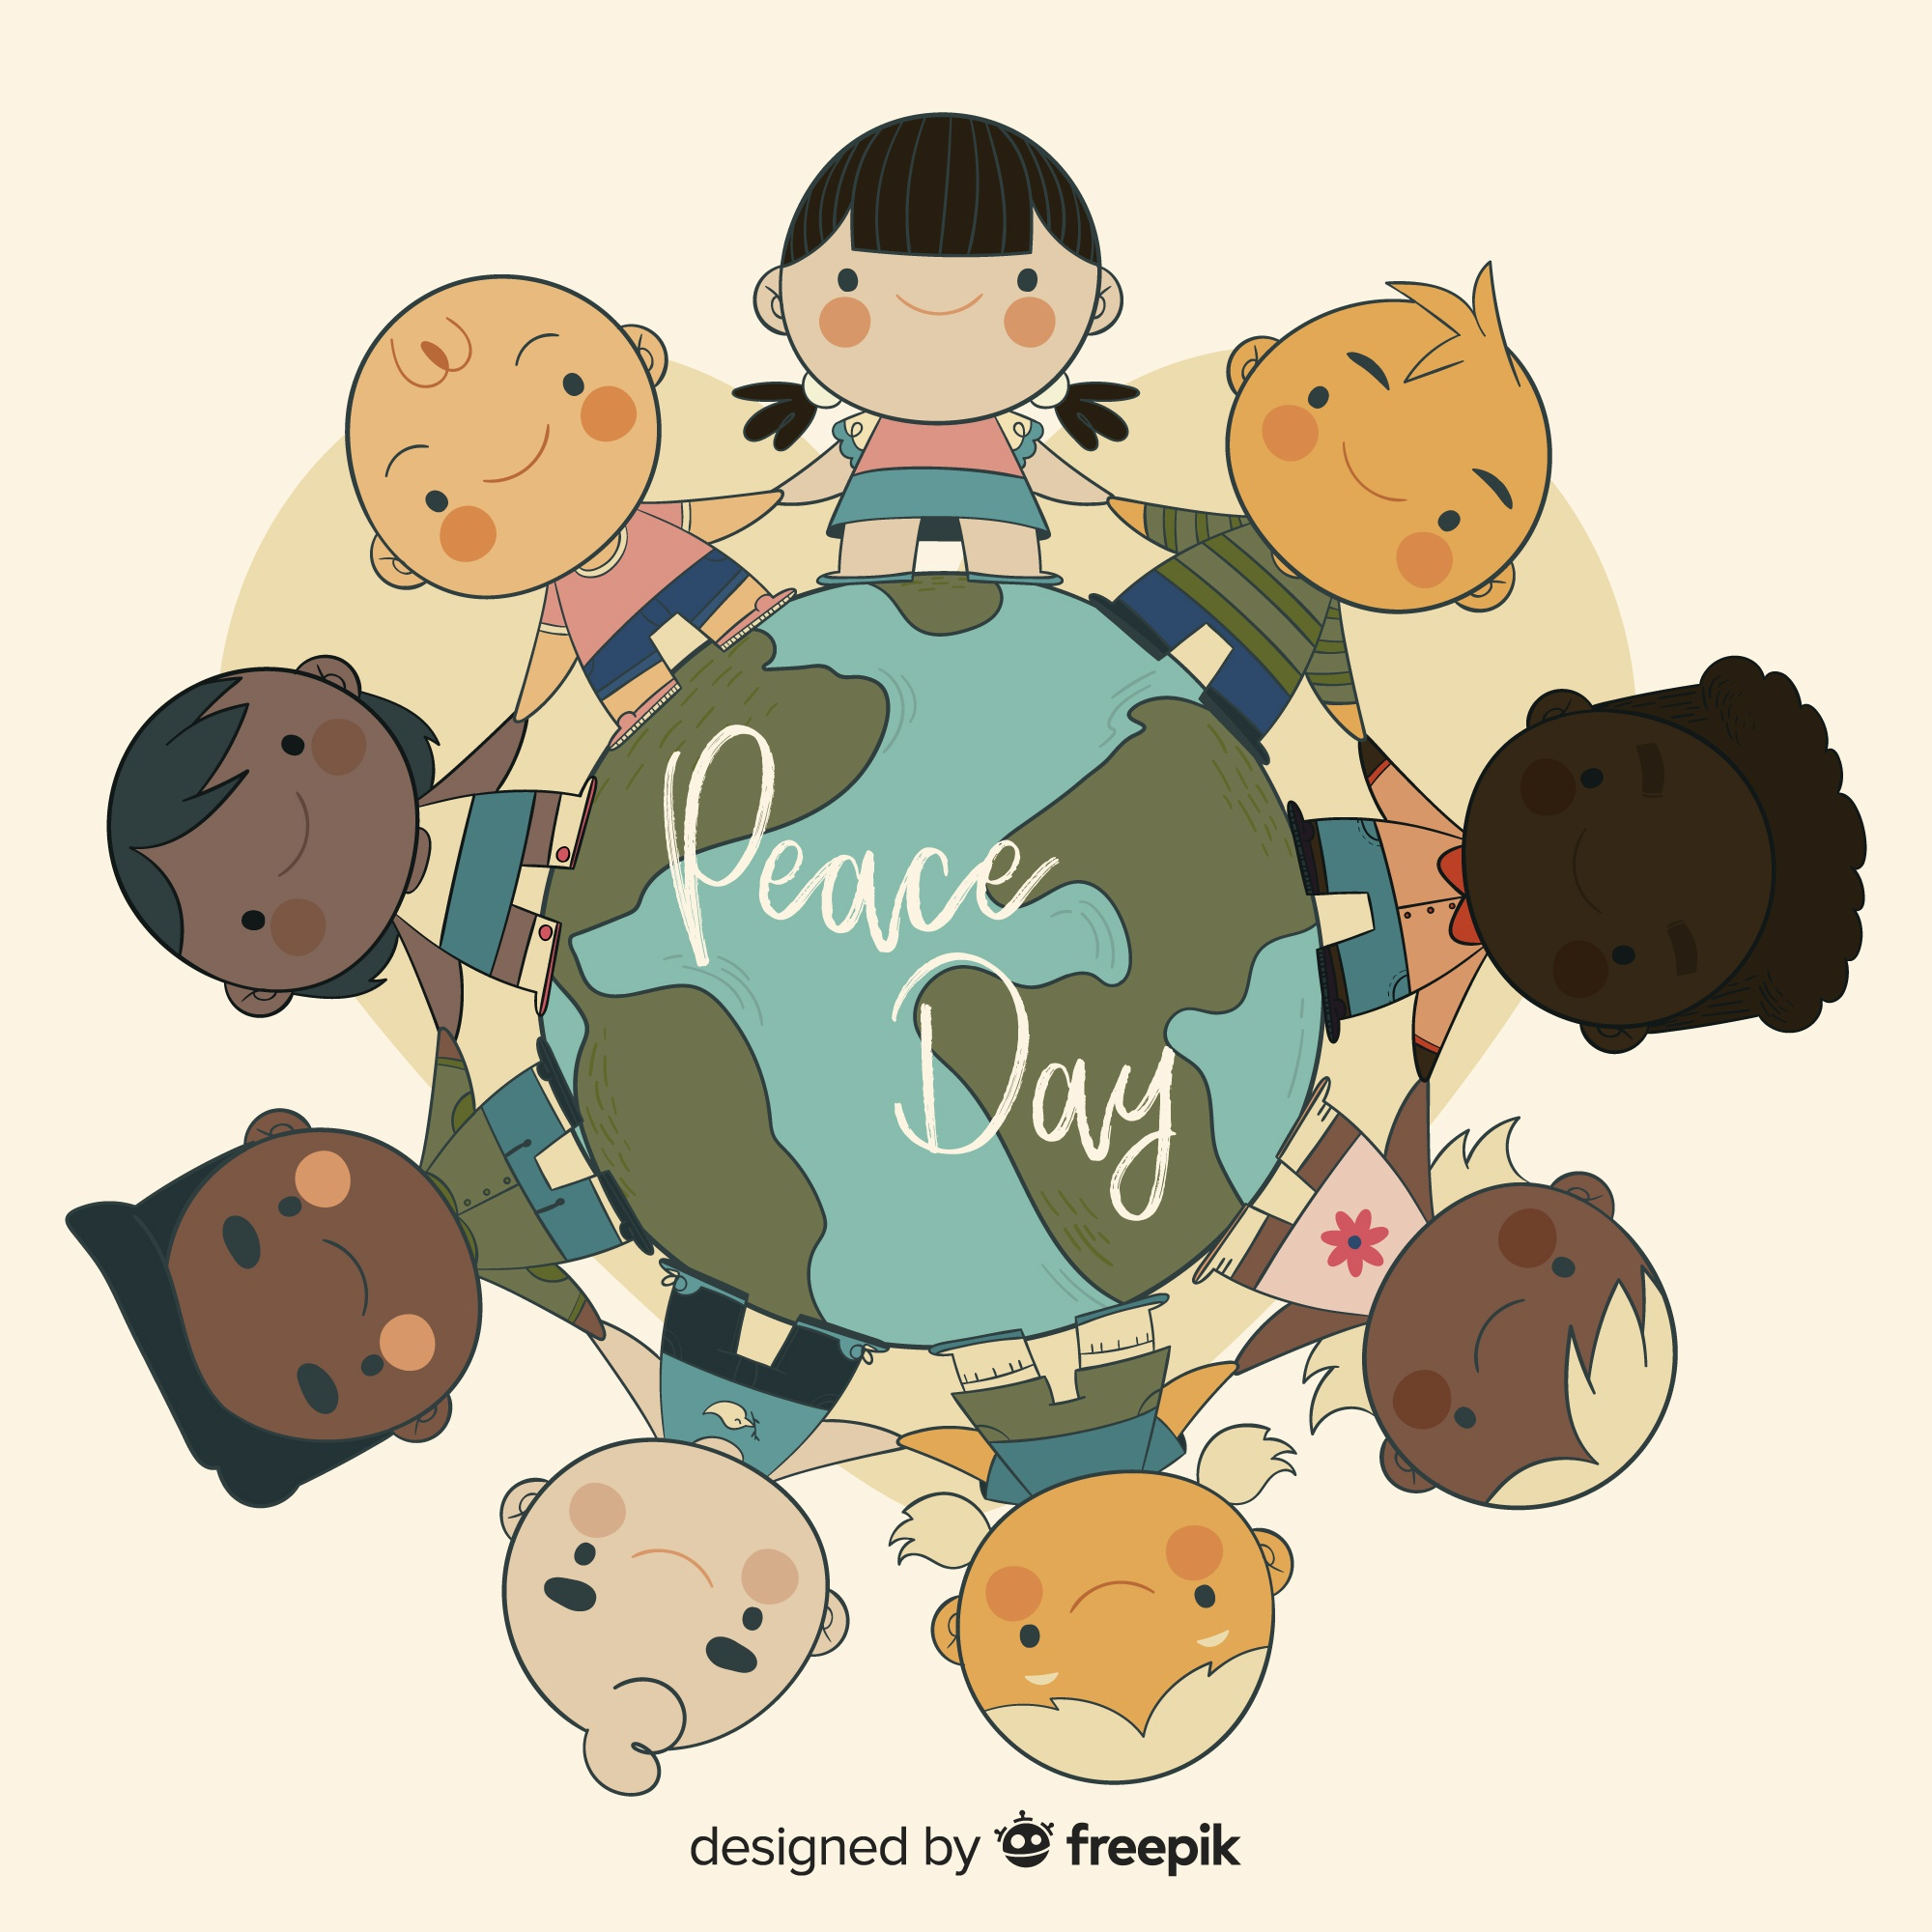 Hand drawn peace day composition with children holding hands